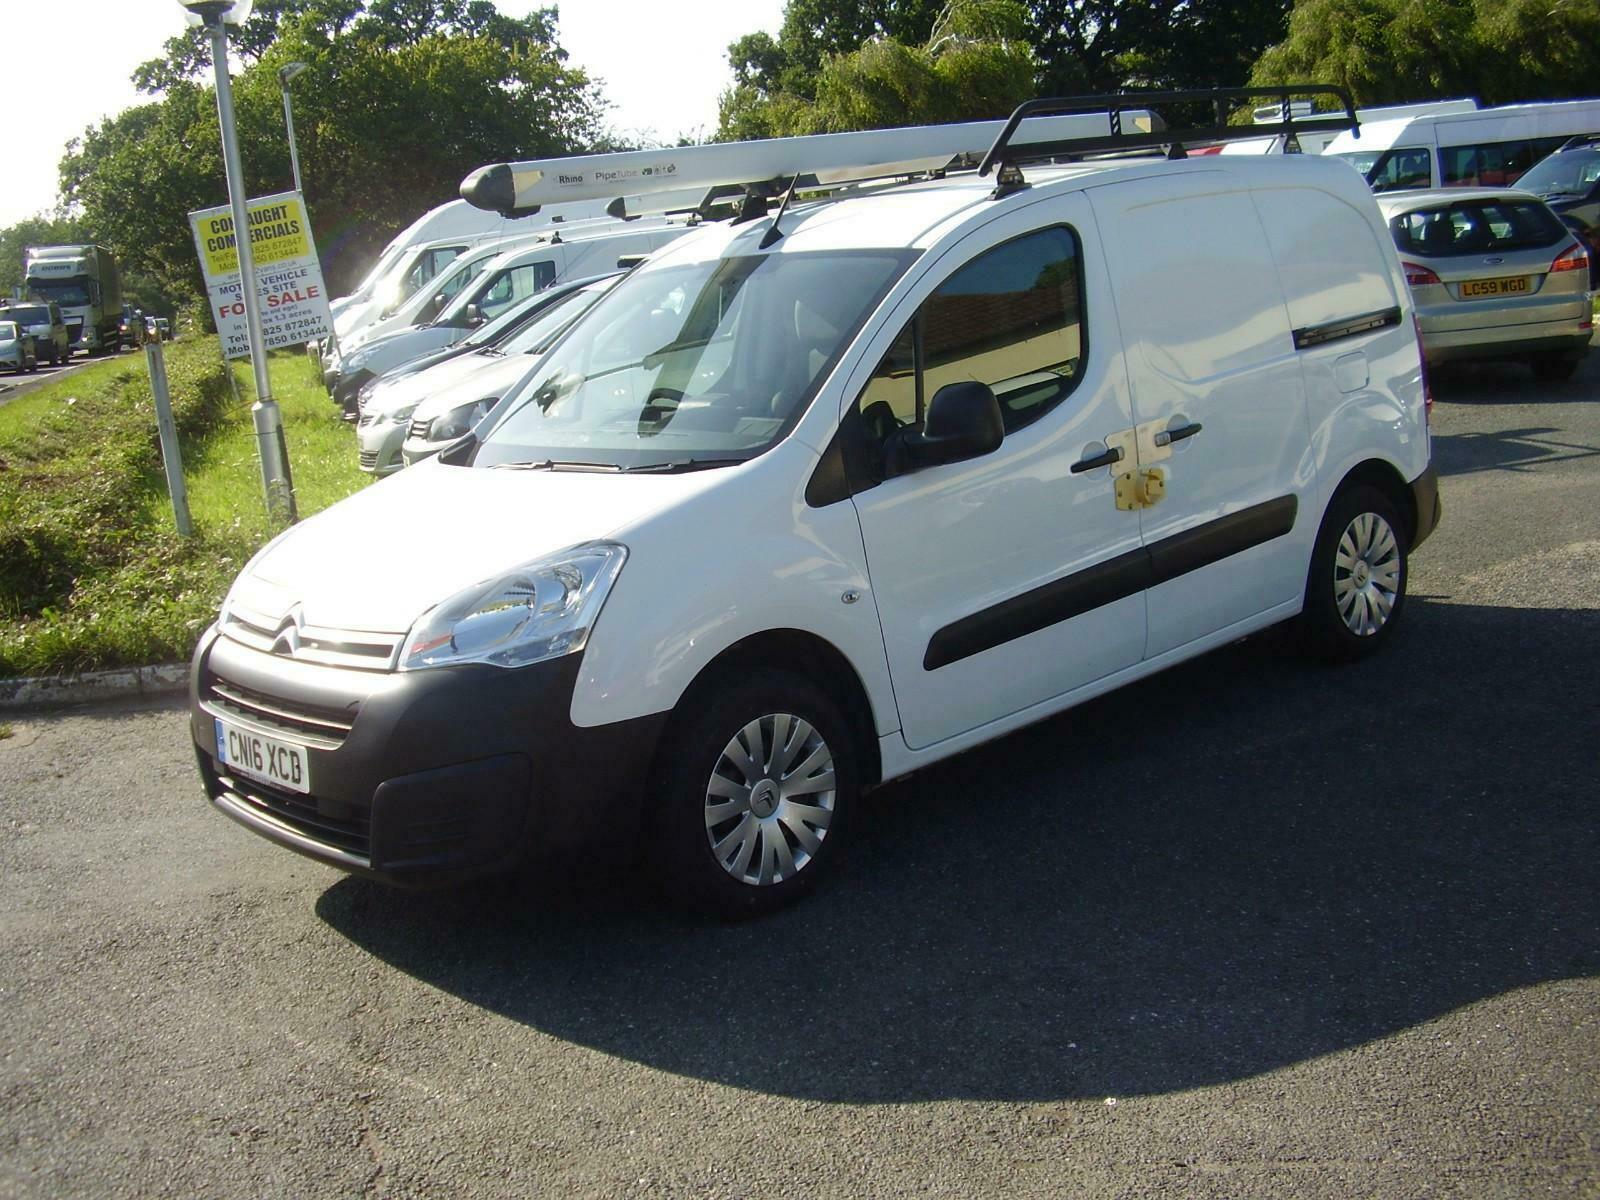 2016 (16) CITROEN BERLINGO 625 ENTERPRISE £5,950.00 HDi 1560cc